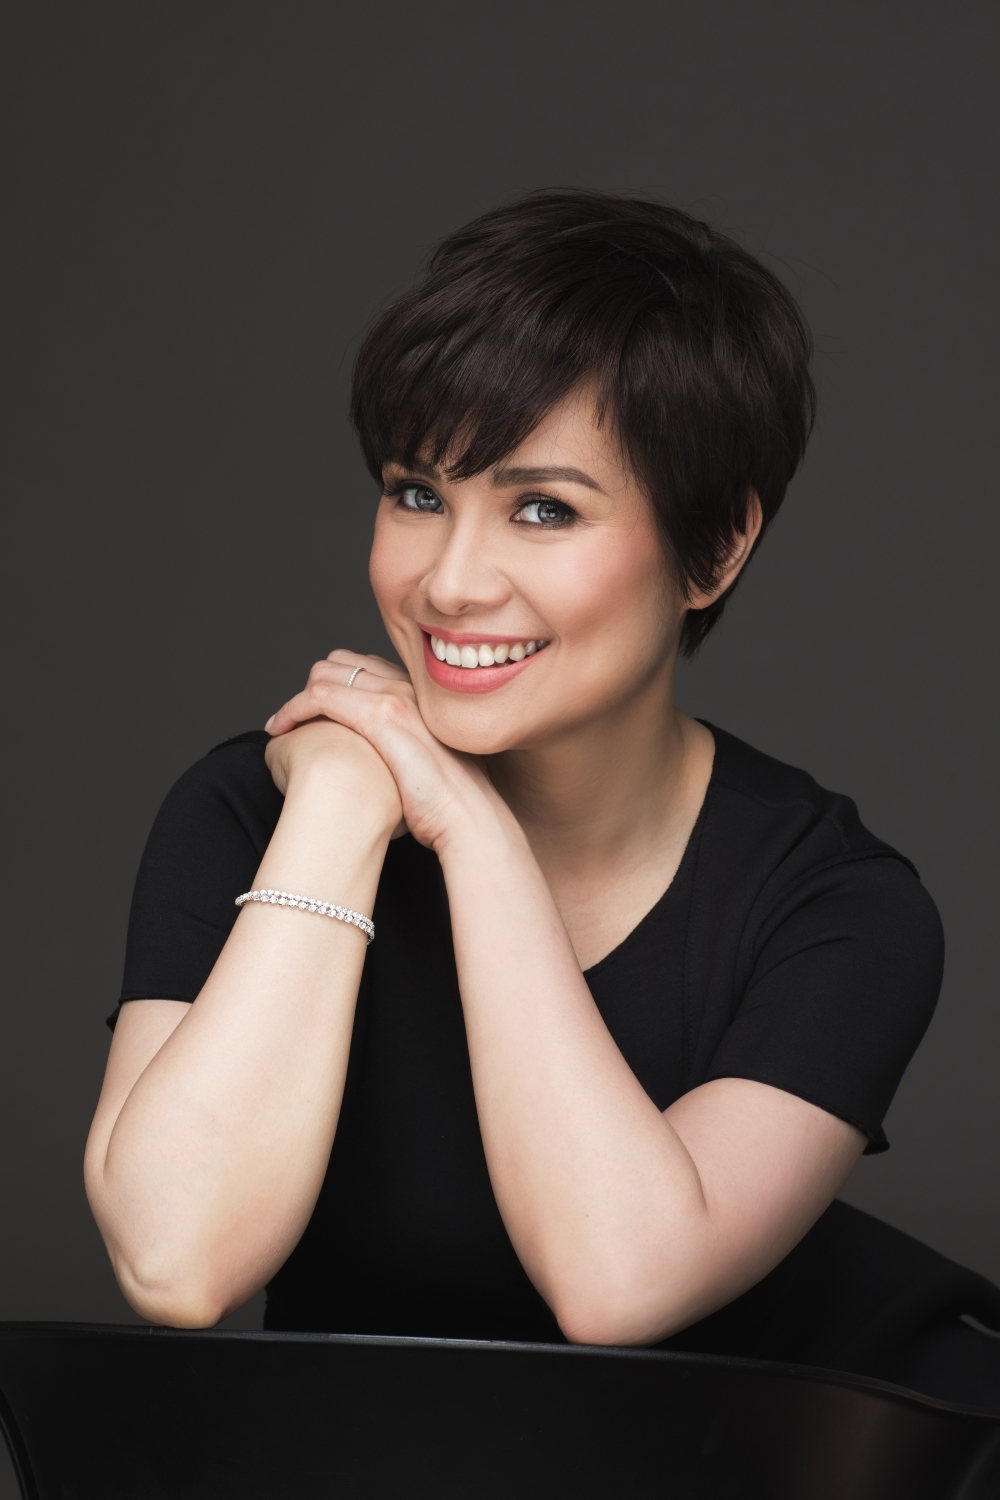 BWW Interview: Lea Salonga Discusses Her UK Tour